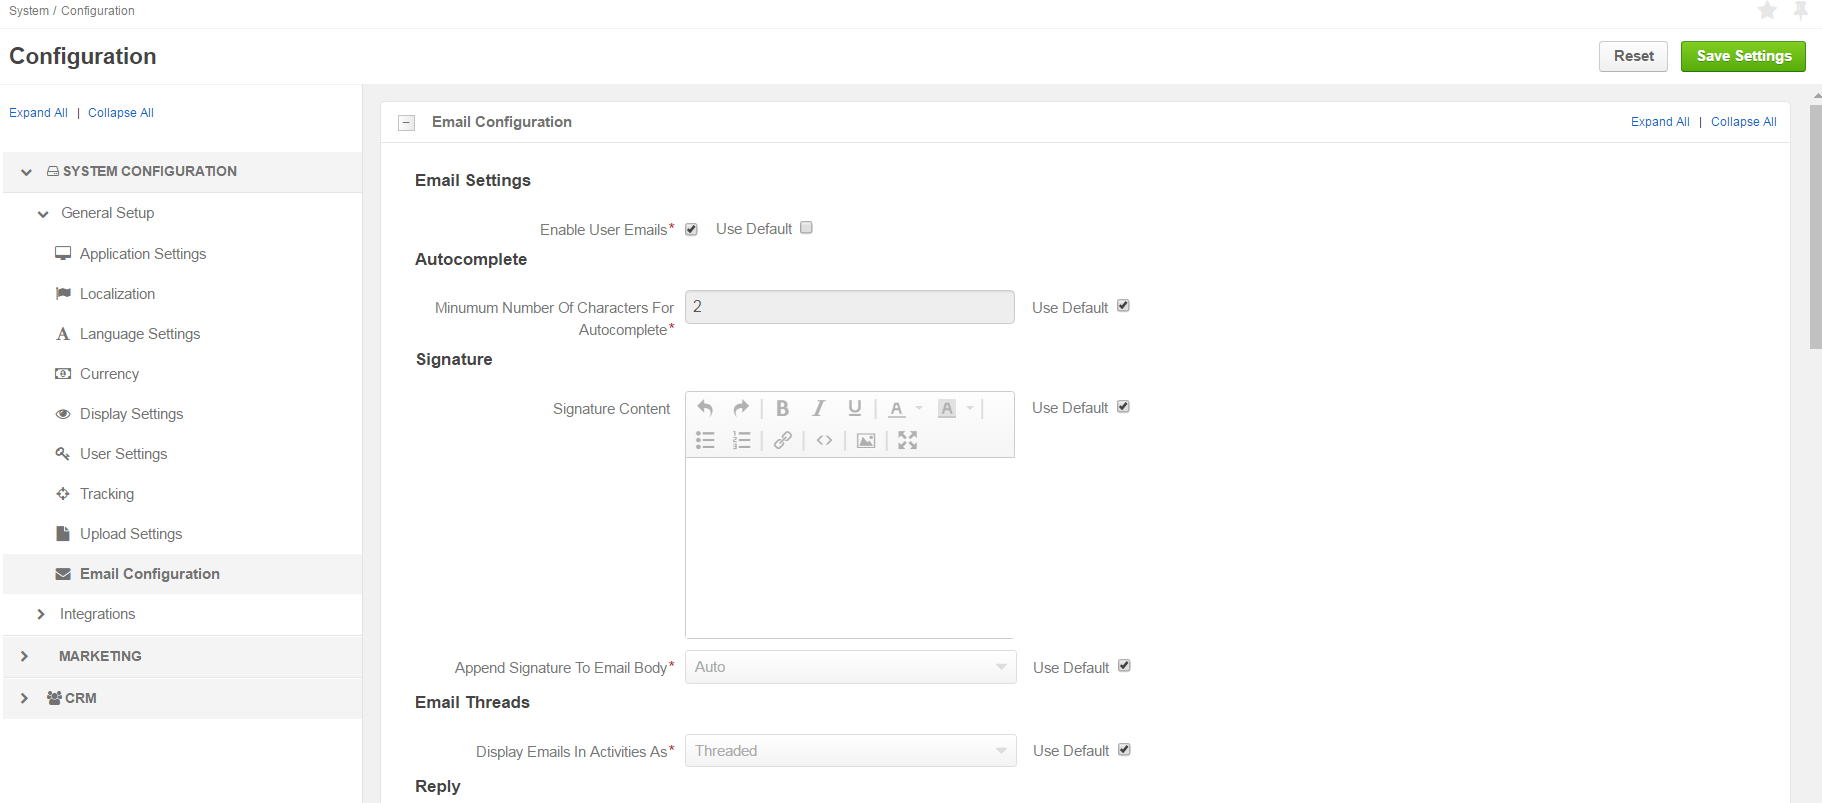 Email configuration options overview, part 1